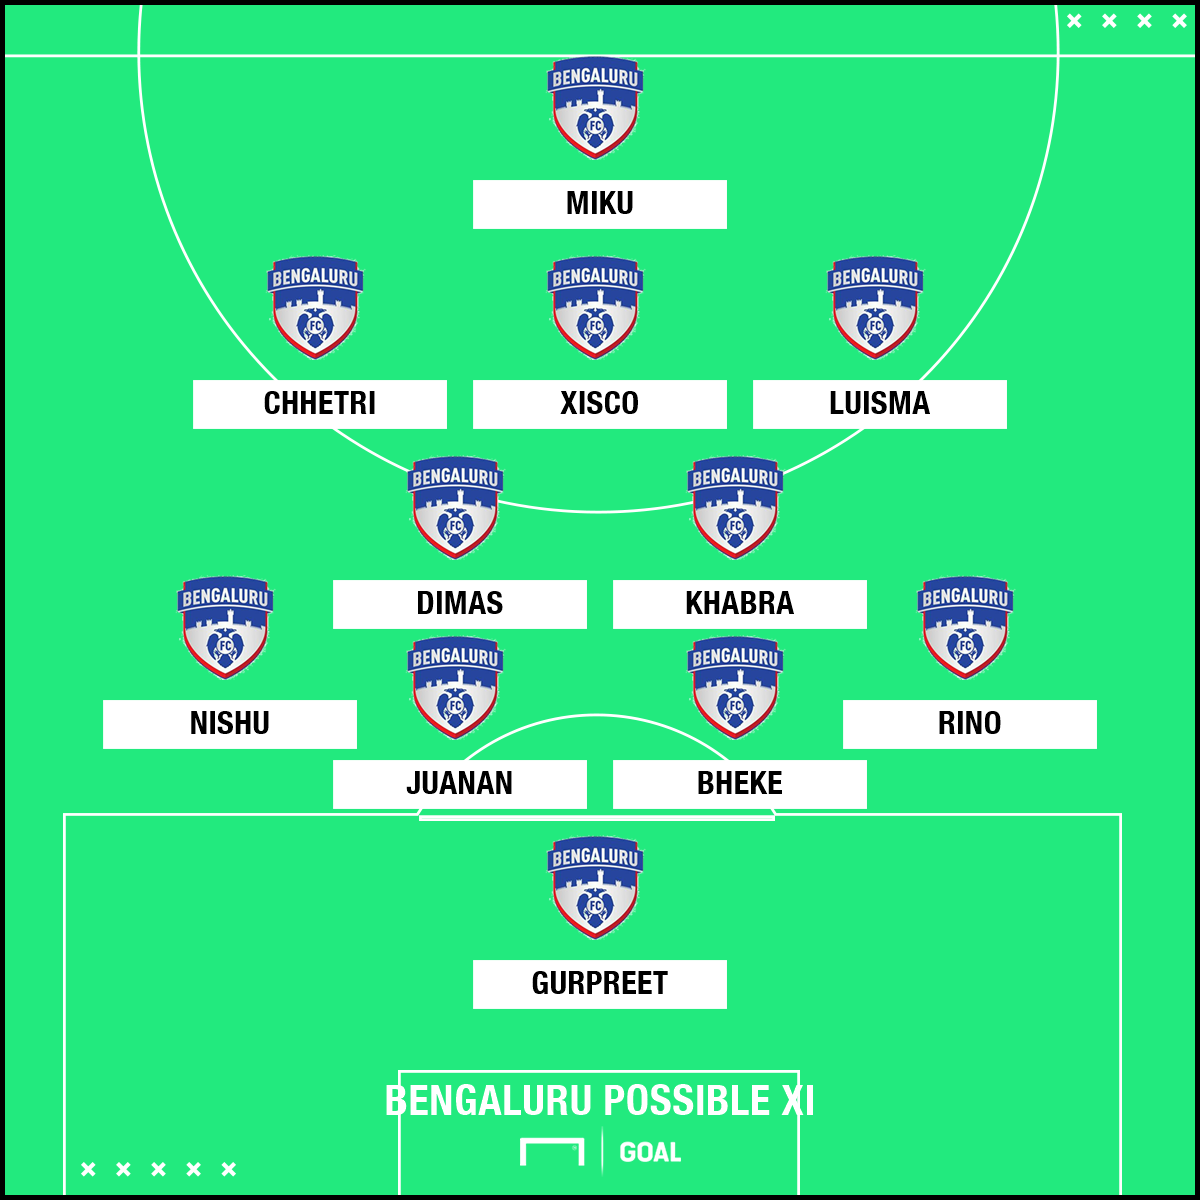 BFC possible Xi